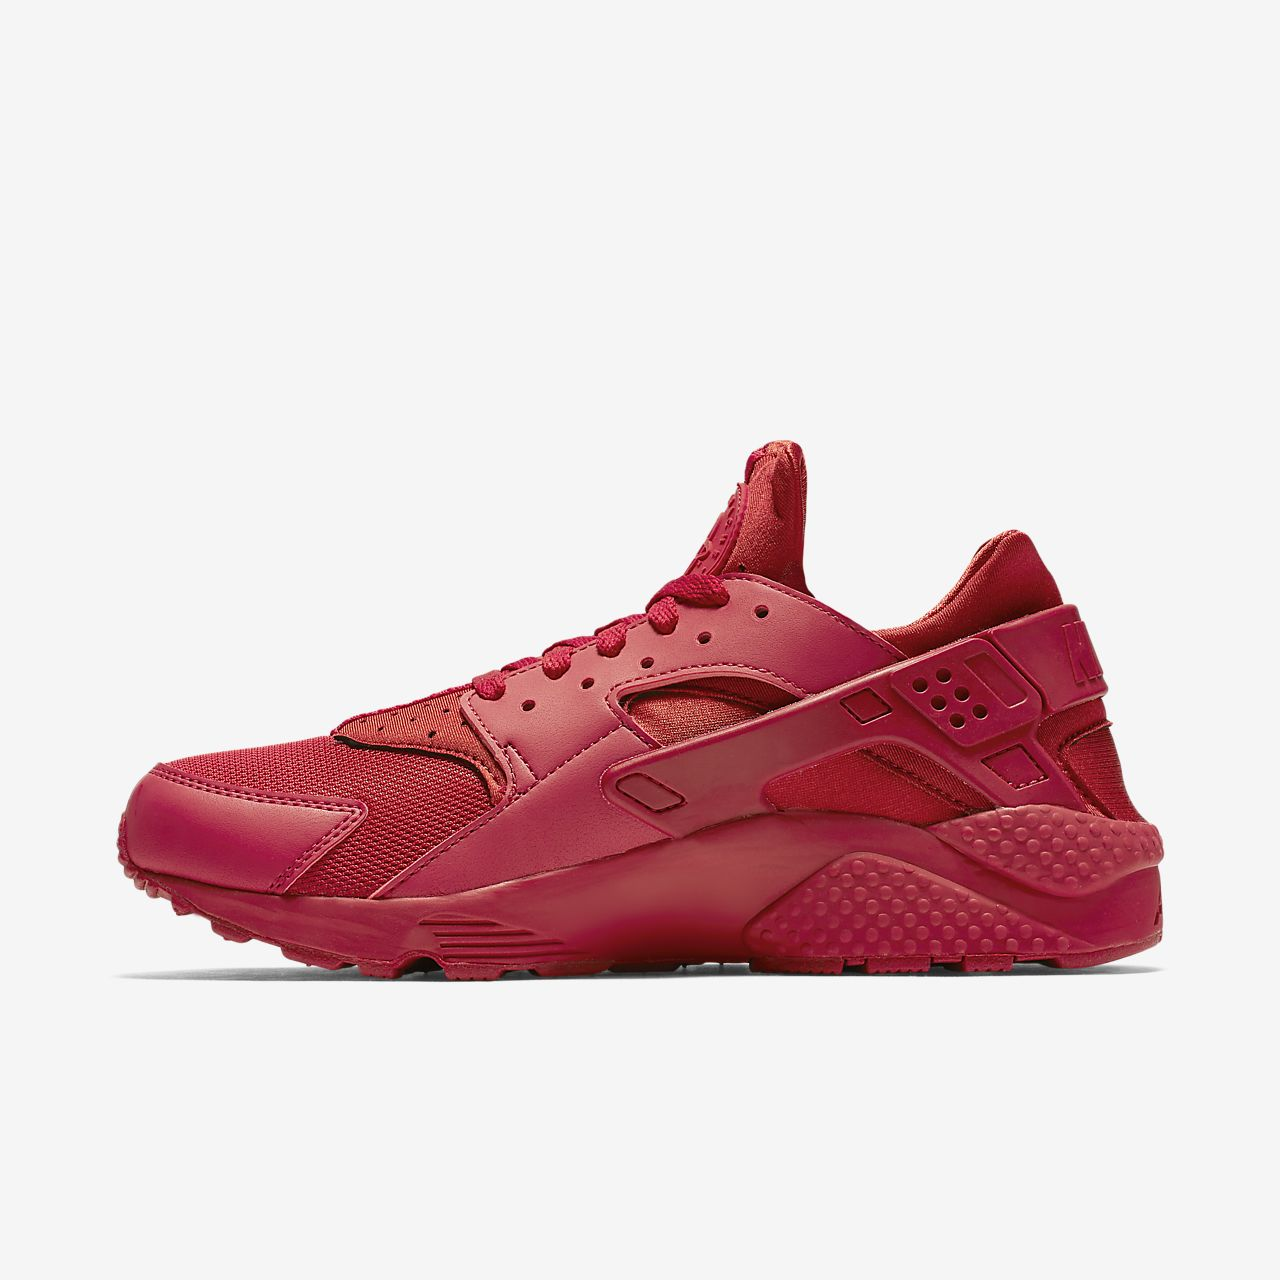 14d8b4b17fa1 Nike Air Huarache Men s Shoe. Nike.com